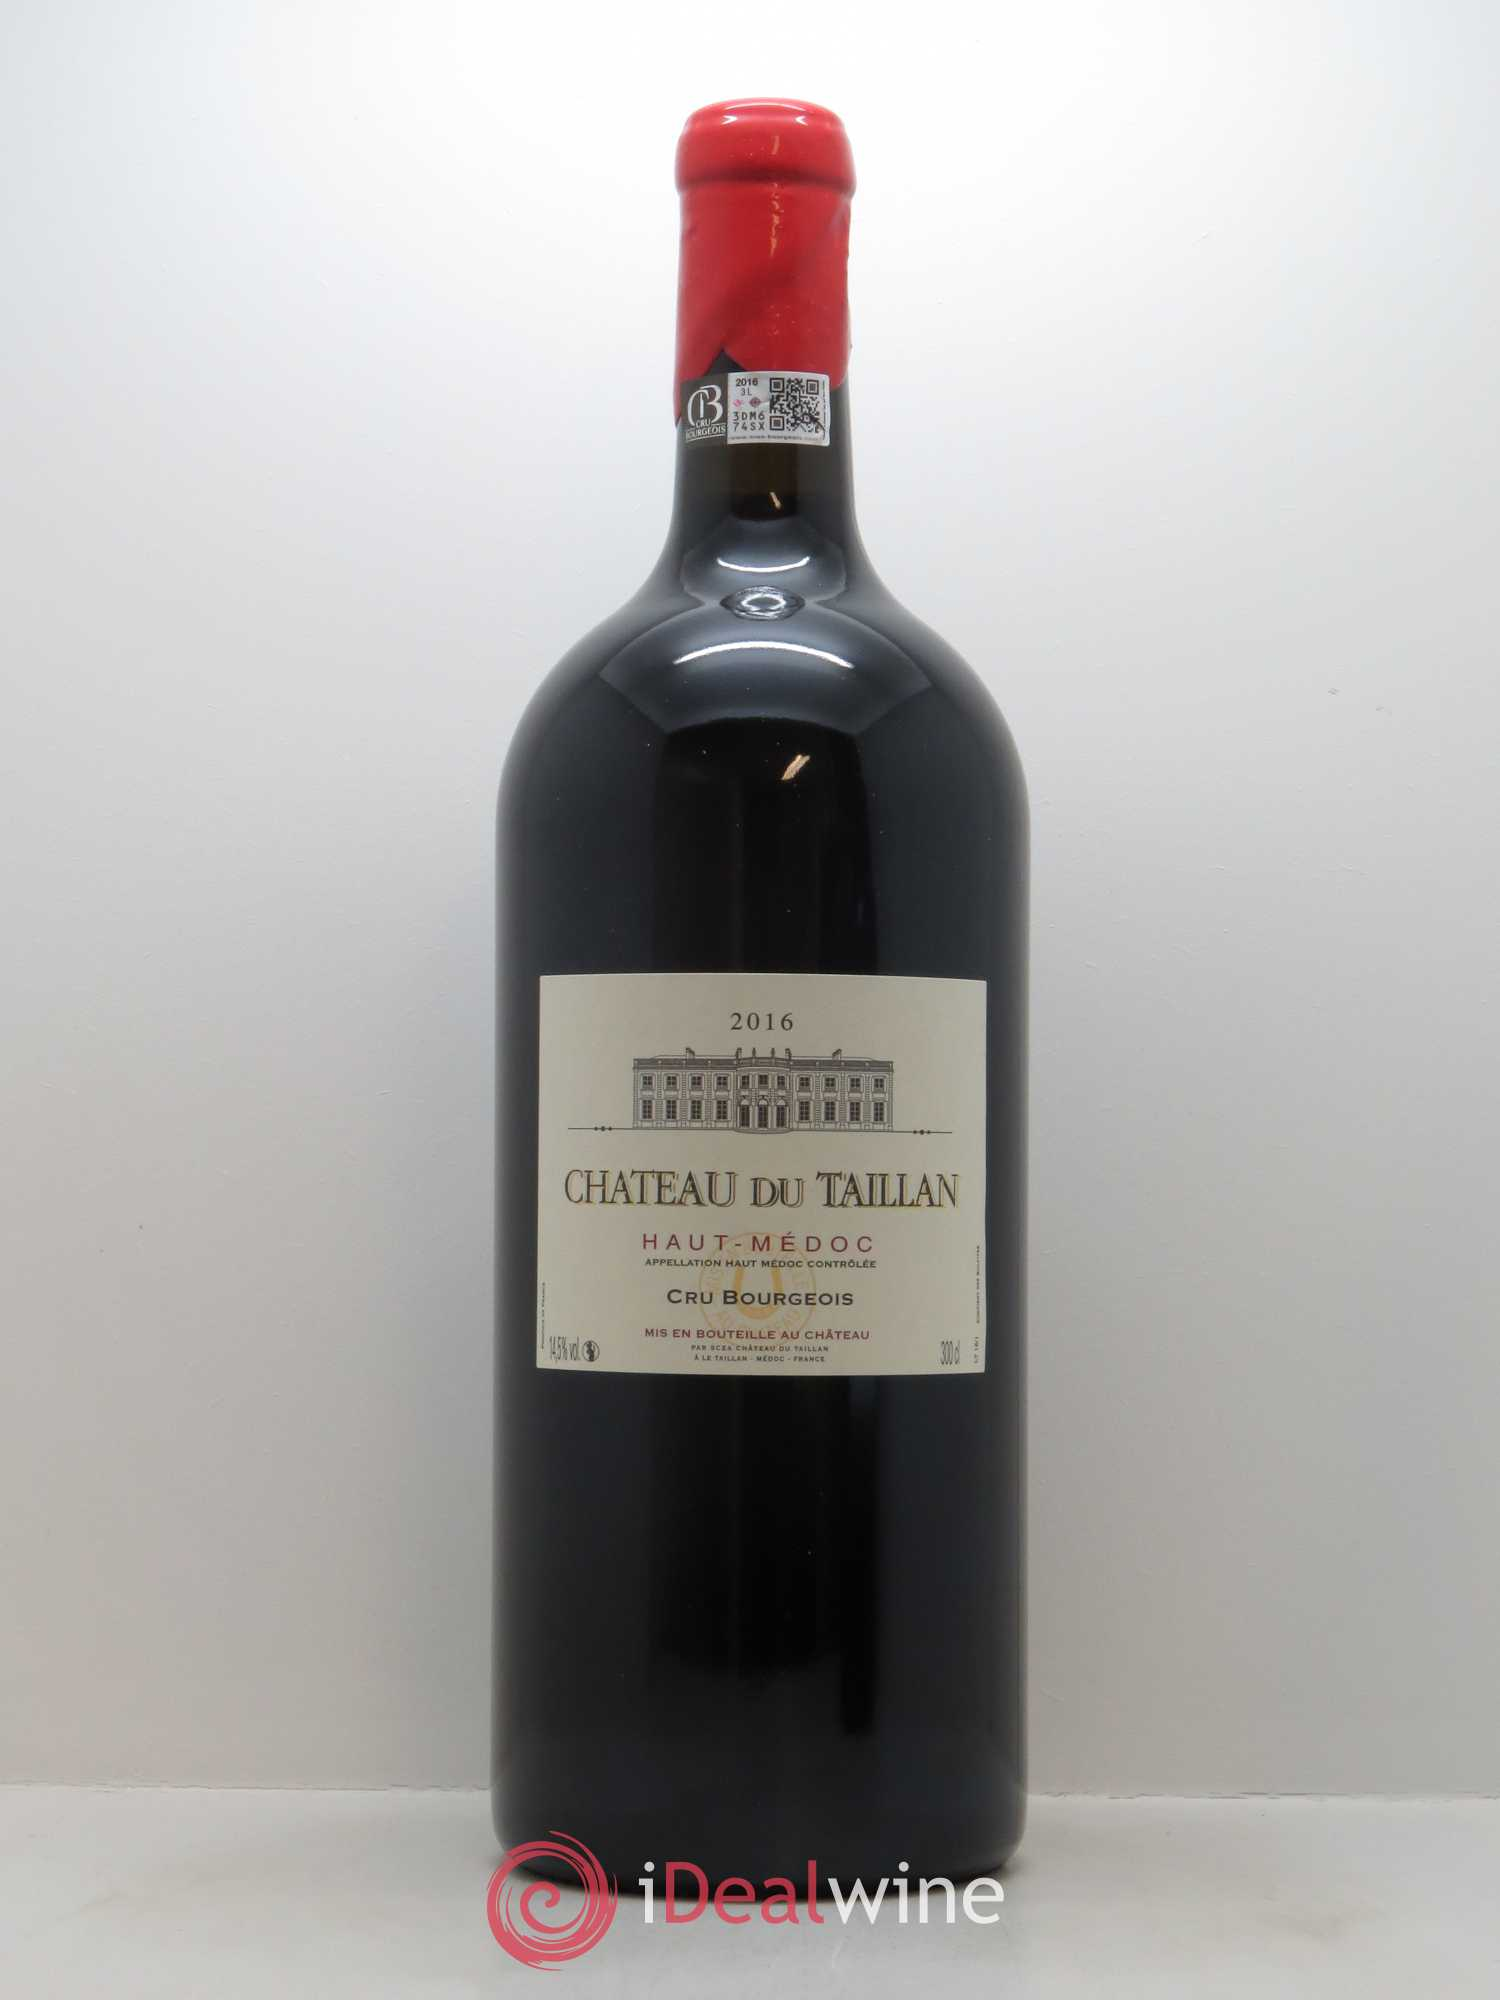 Château du Taillan Cru Bourgeois  2016 - Lot of 1 Double-magnum